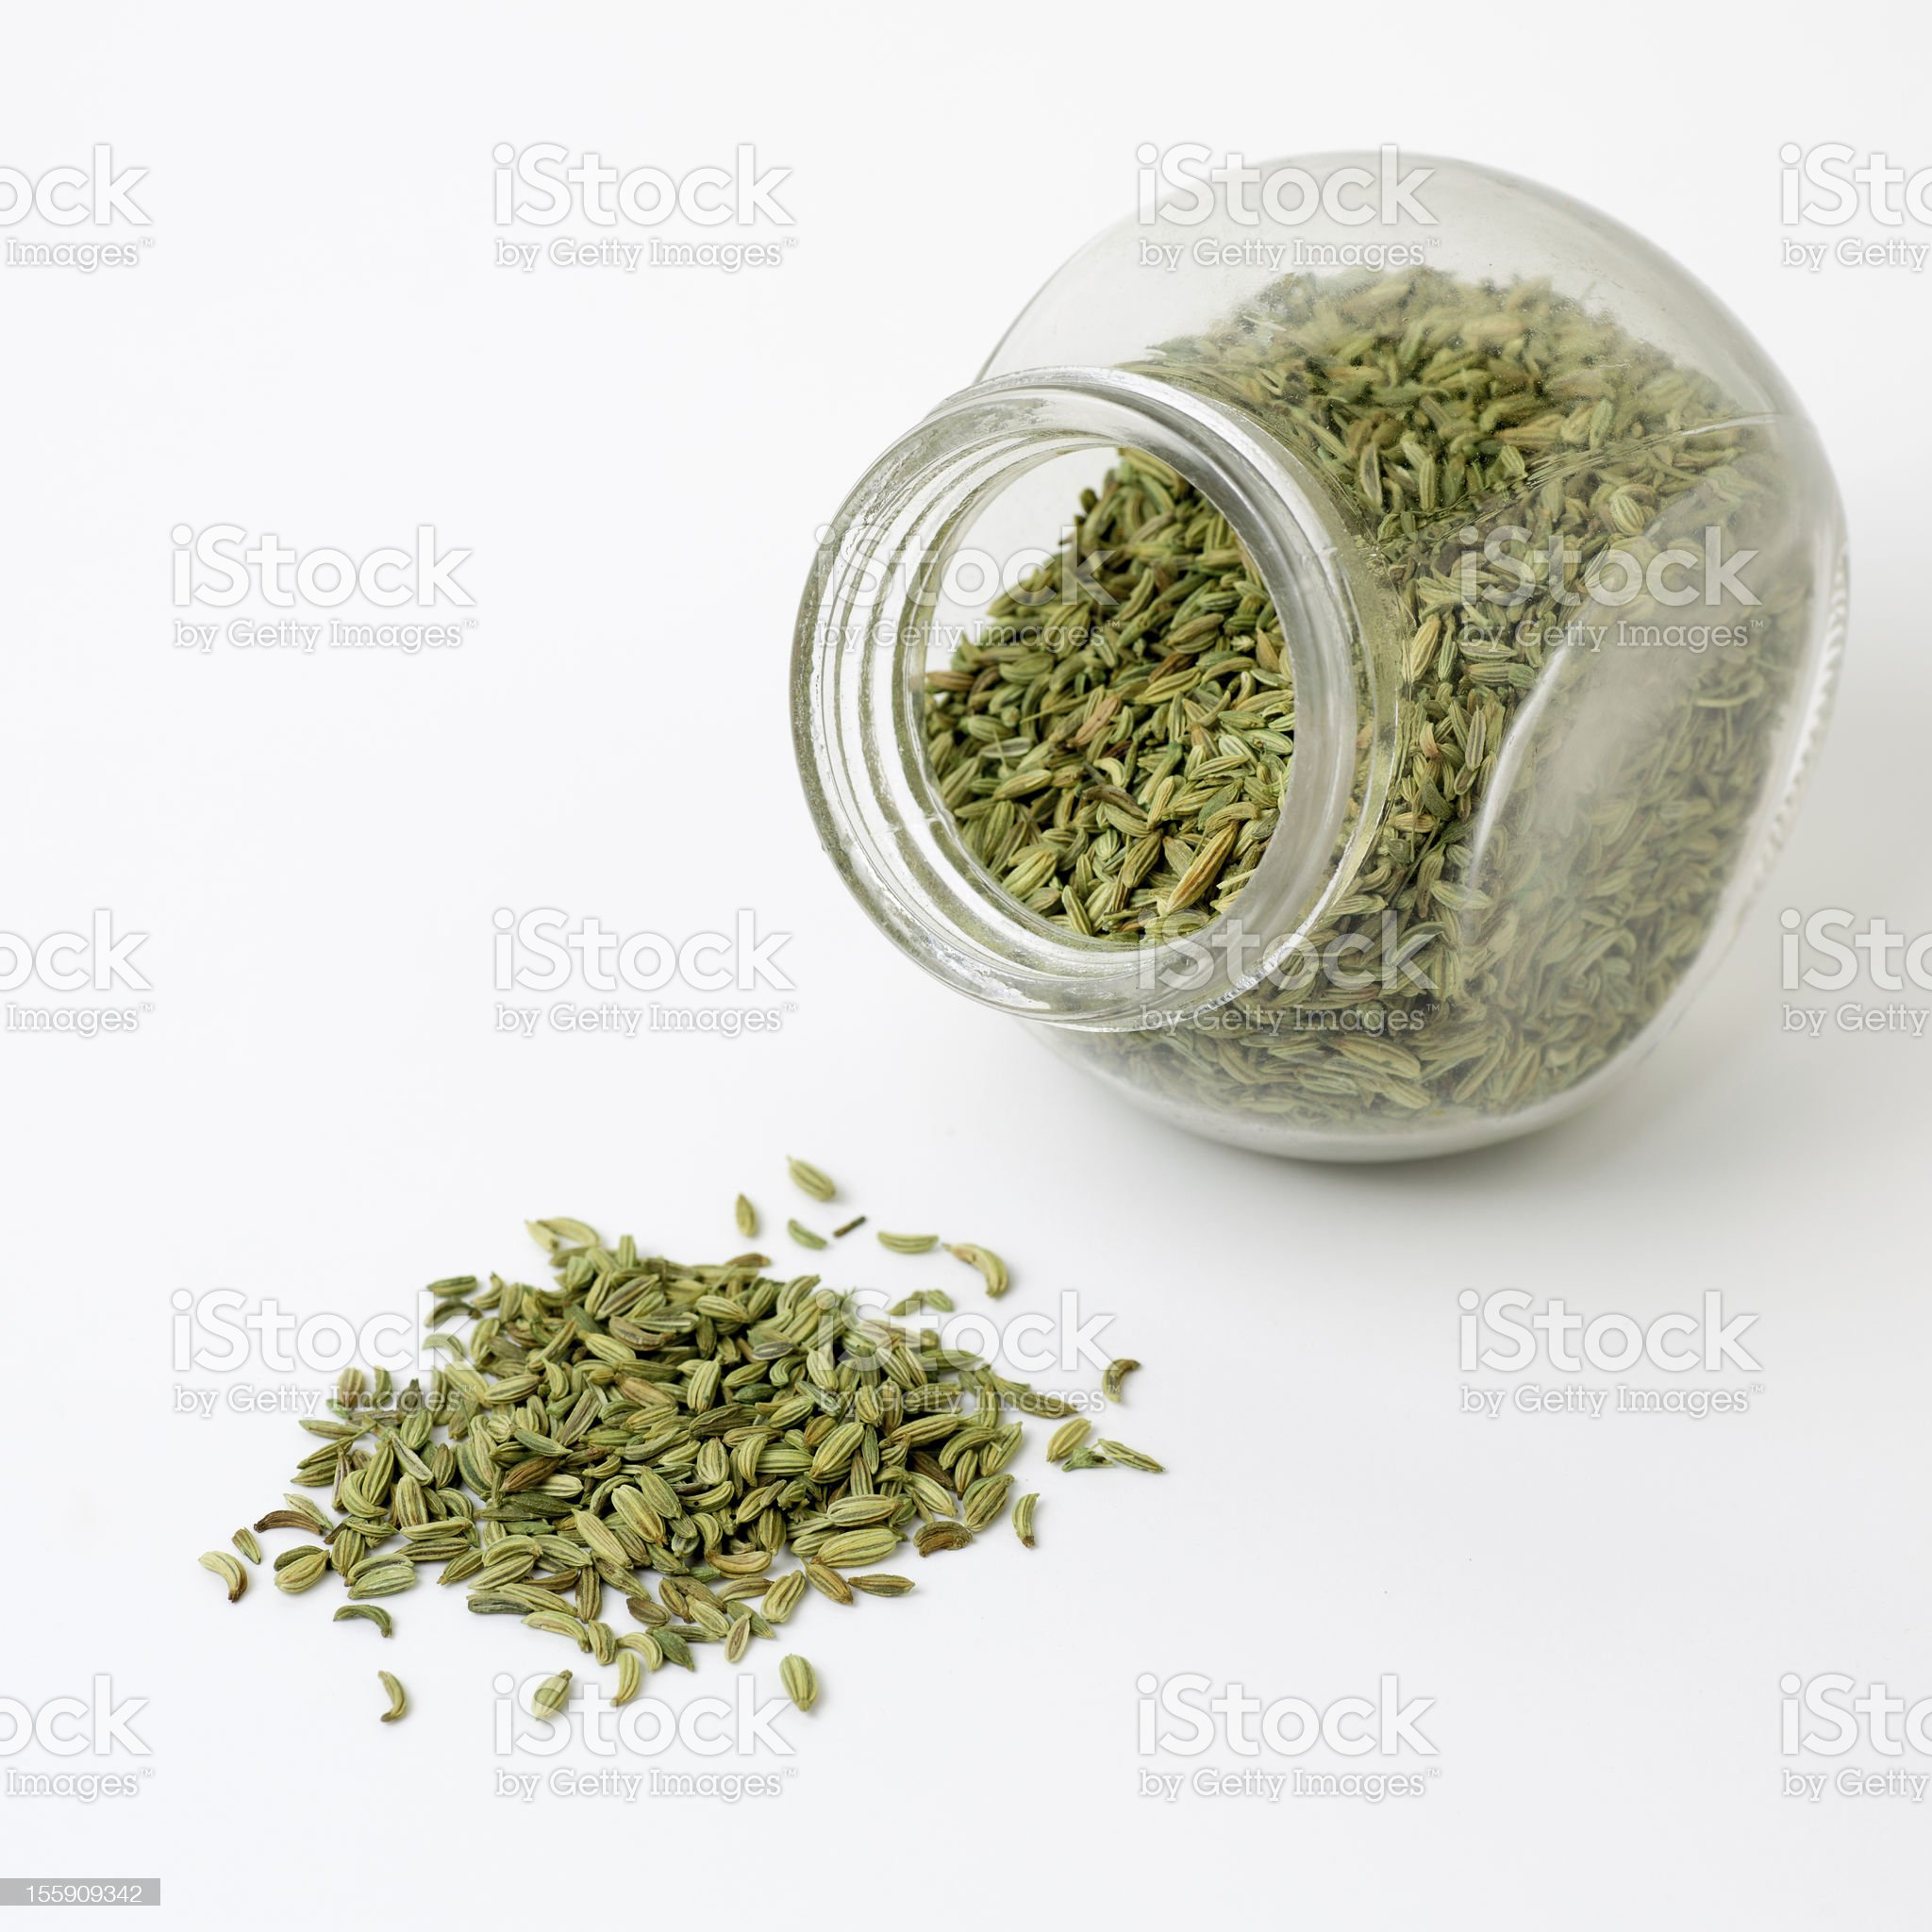 Cumin Seeds On White Background royalty-free stock photo